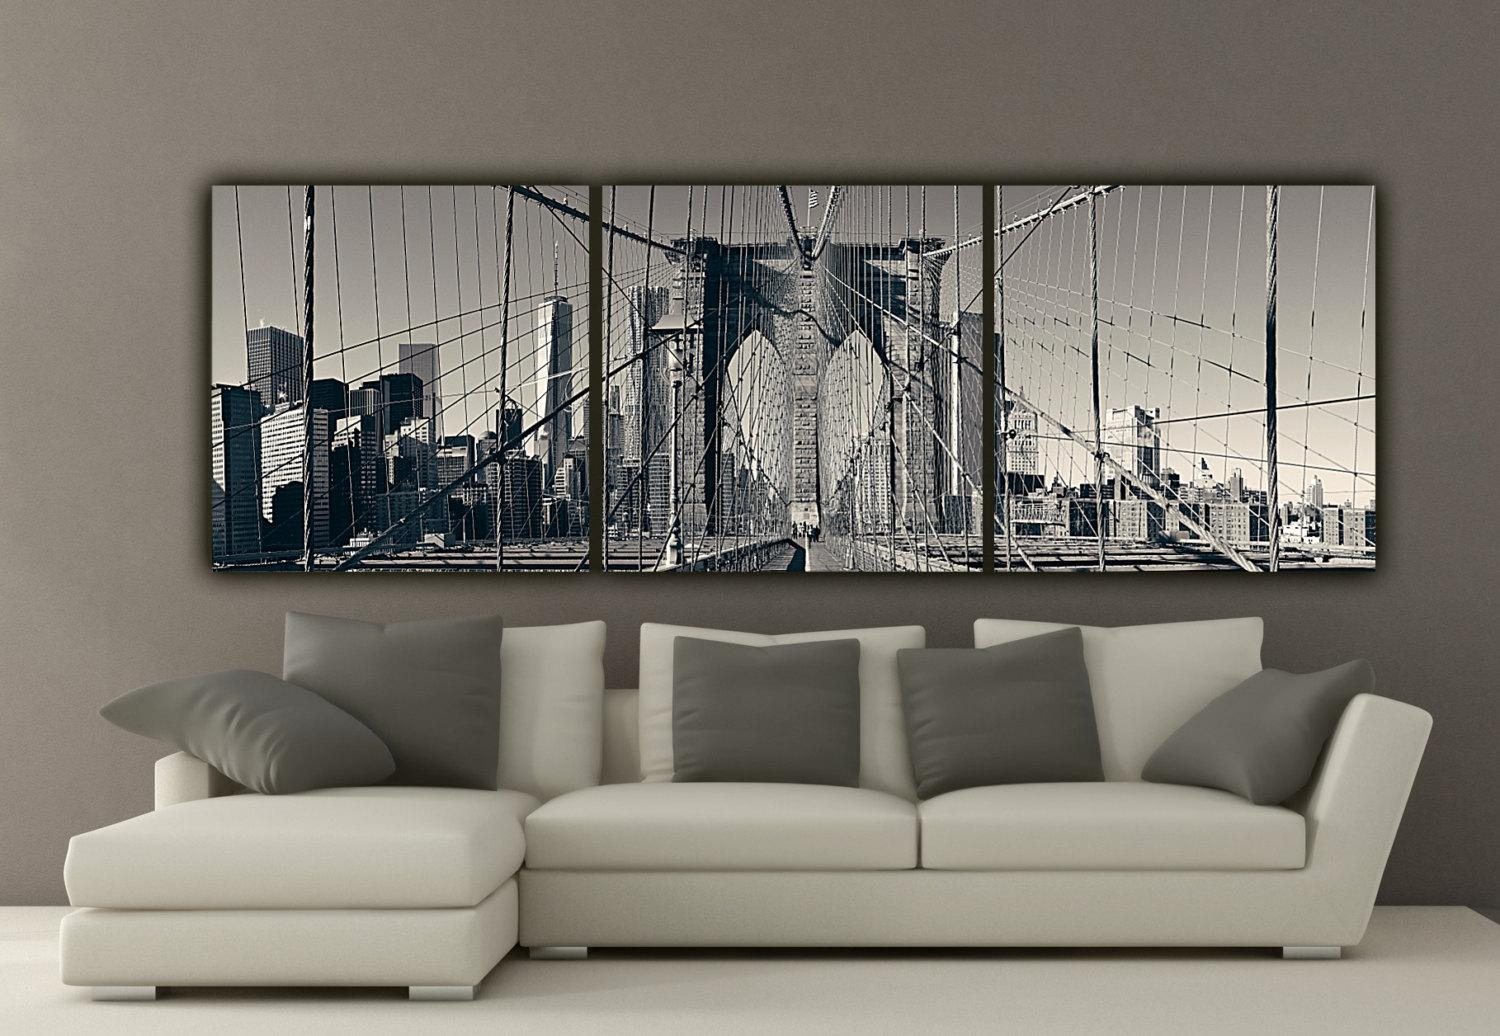 New York Brooklyn Bridge Canvas Wall Art Black And White New Within Black White And Red Wall Art (Image 14 of 20)